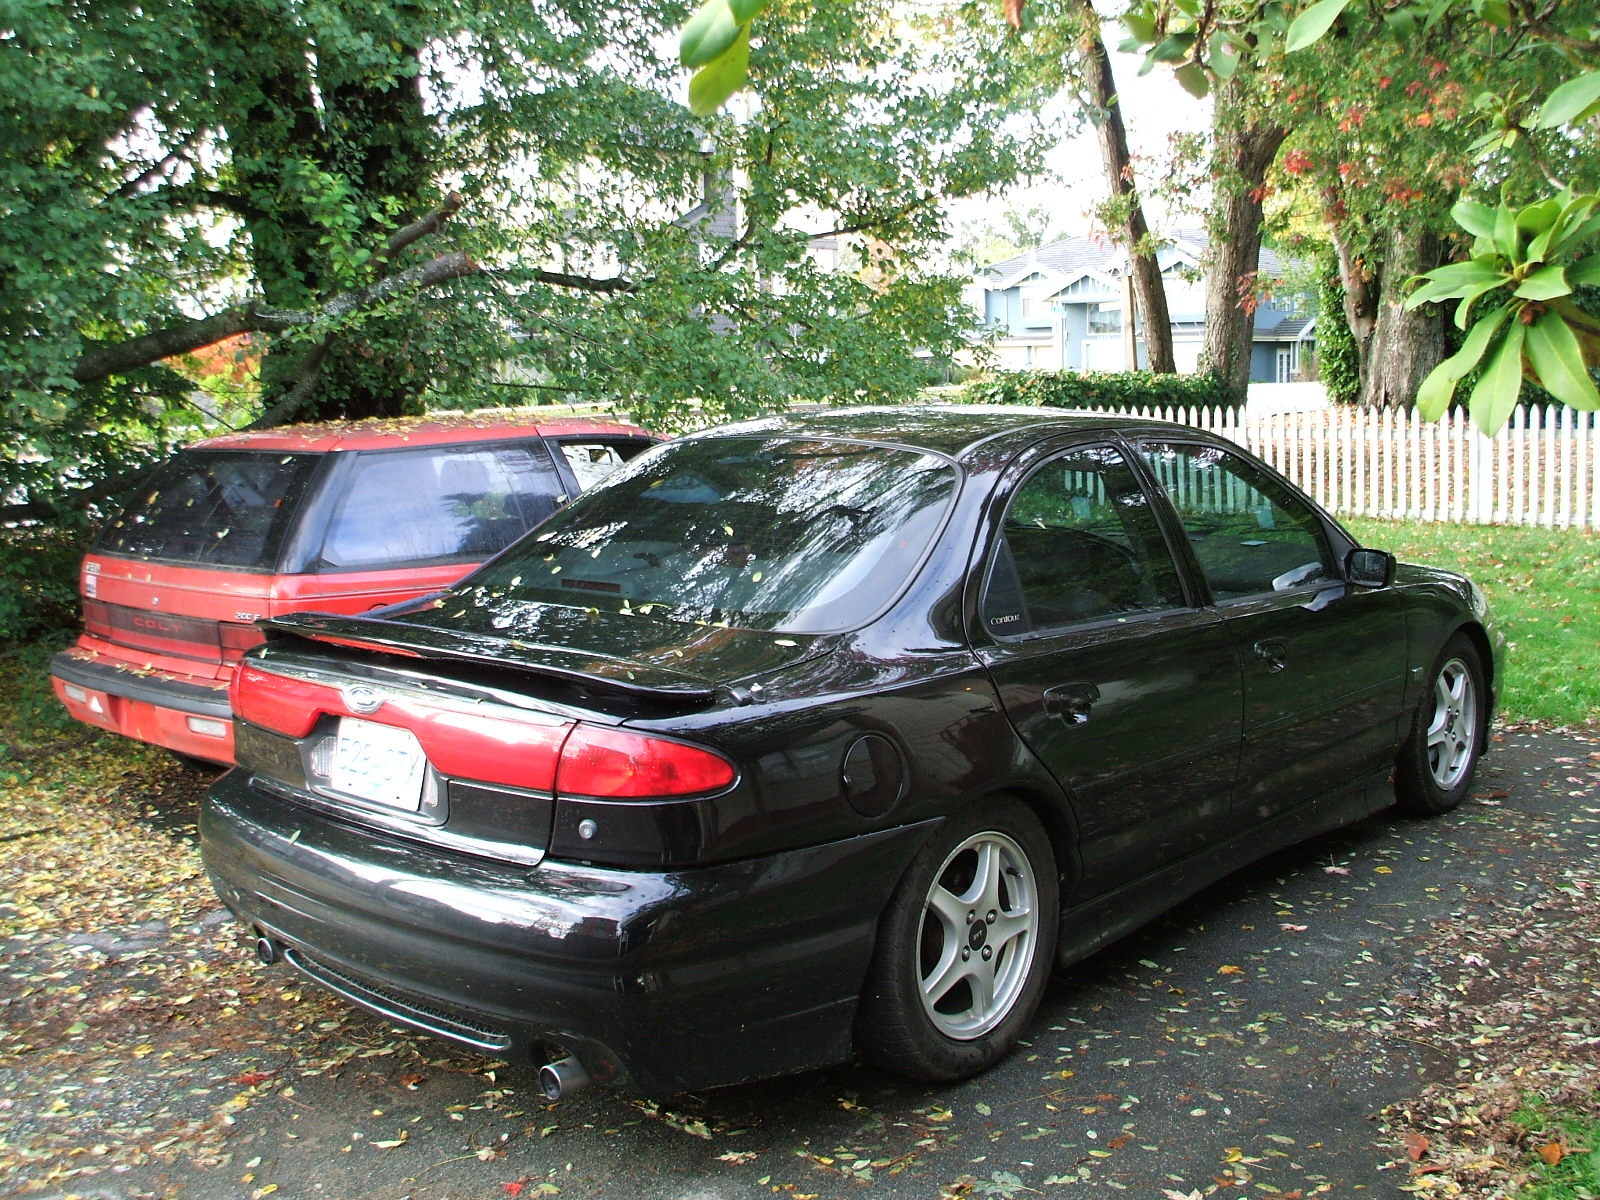 1999 Ford Contour SVT 4 Dr STD Sedan - Pictures - Picture of 1999 Ford ...